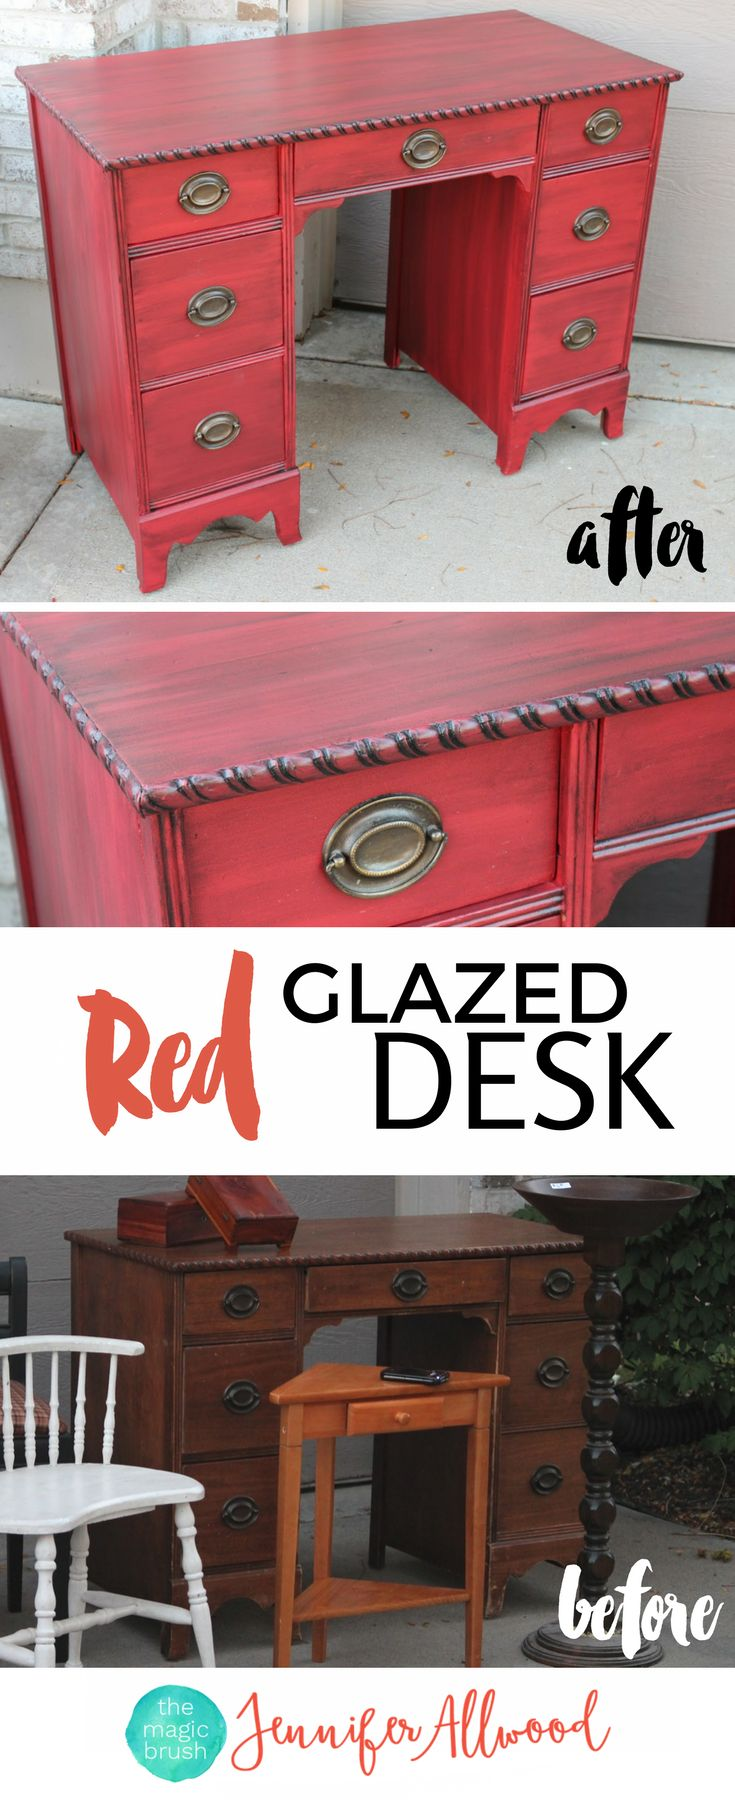 Red Glazed Desk Makeover by Jennifer Allwood | HOw to Paint Furnitiure | Red Painted Furniture Ideas | Red Bay Sherwin Williams | Glazed Furniture | Painted Desk Furniture Before and After